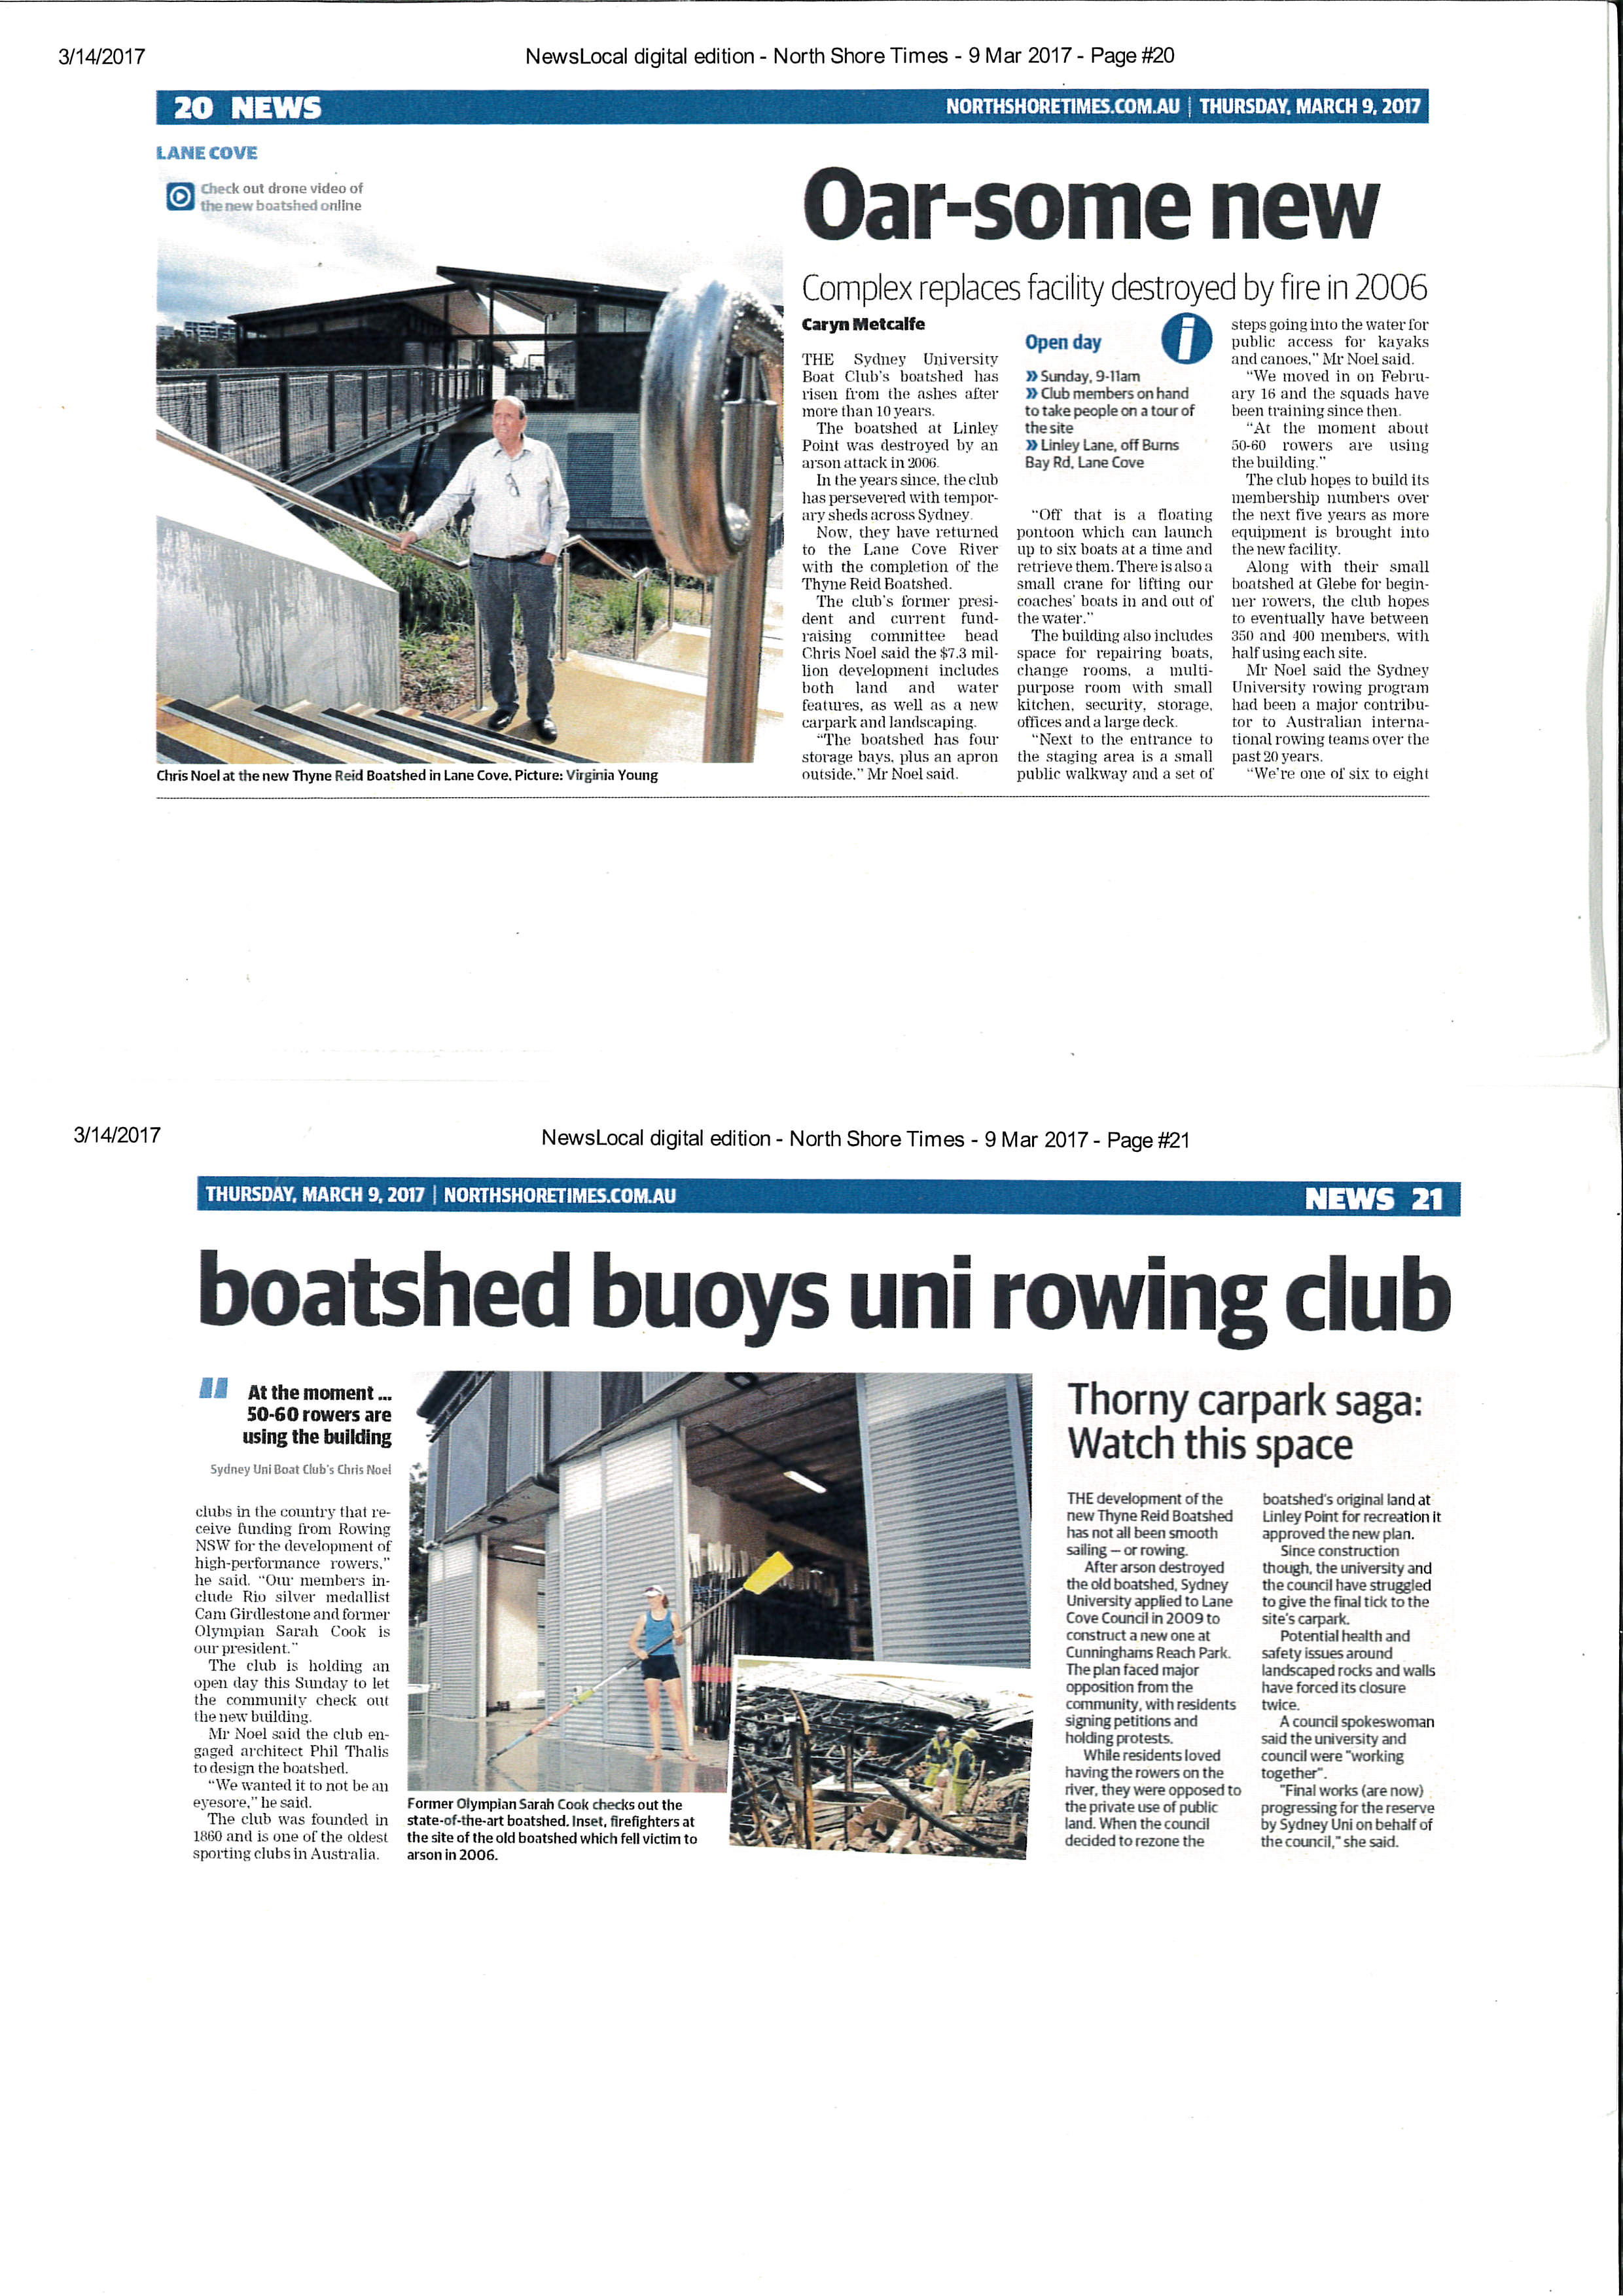 newspaper articles on opening of new boatshed.jpg